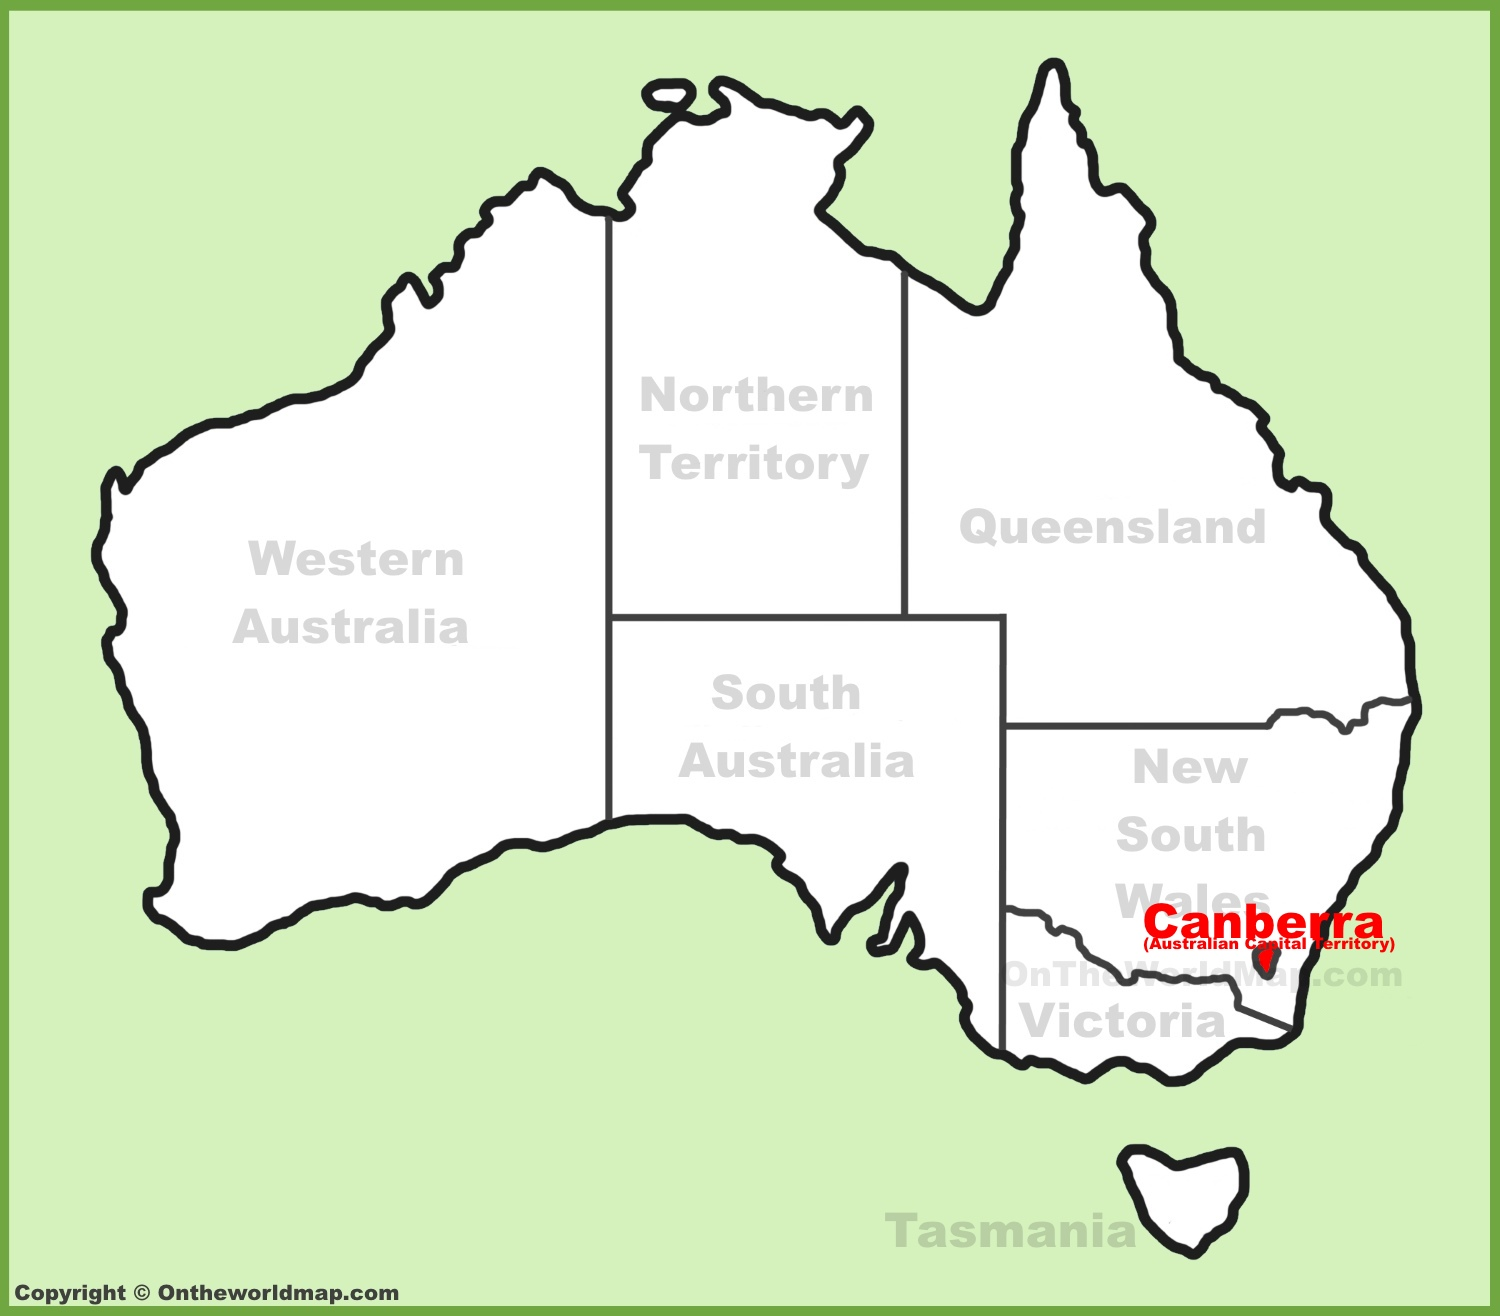 Australia Map Canberra.Canberra Maps Australia Maps Of Canberra Capital City Of Australia